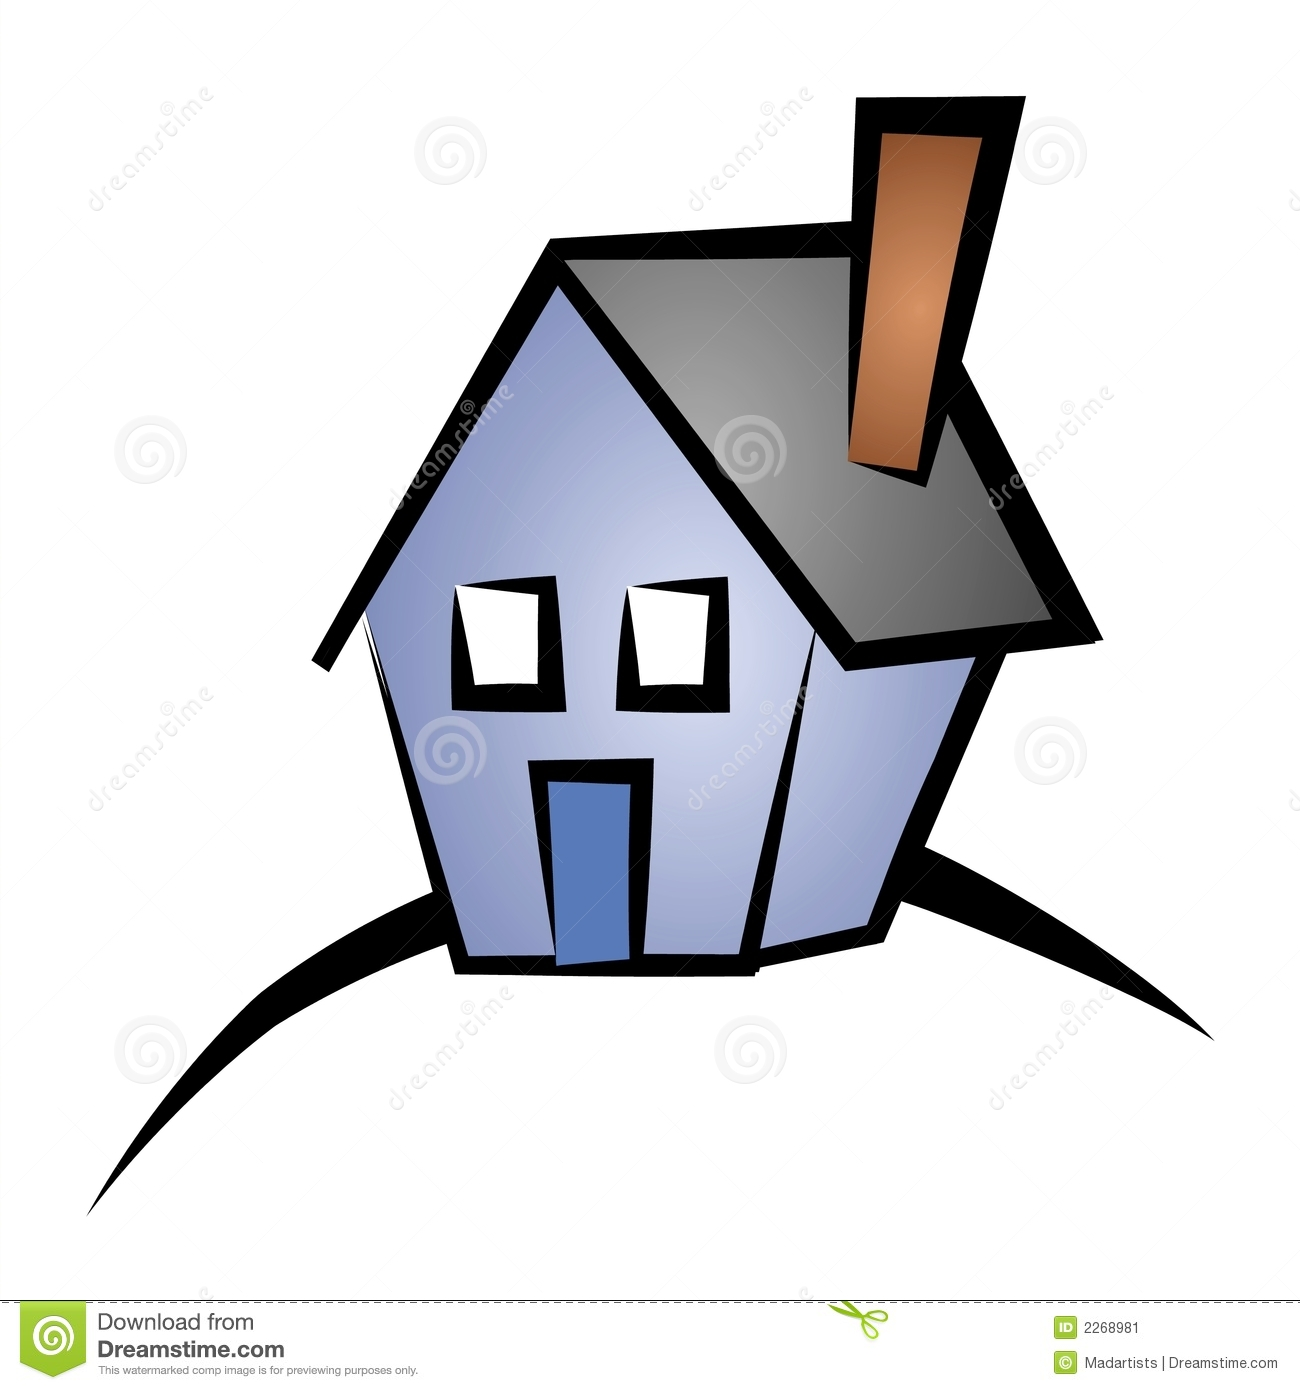 Real Estate Houses Clipart Free.